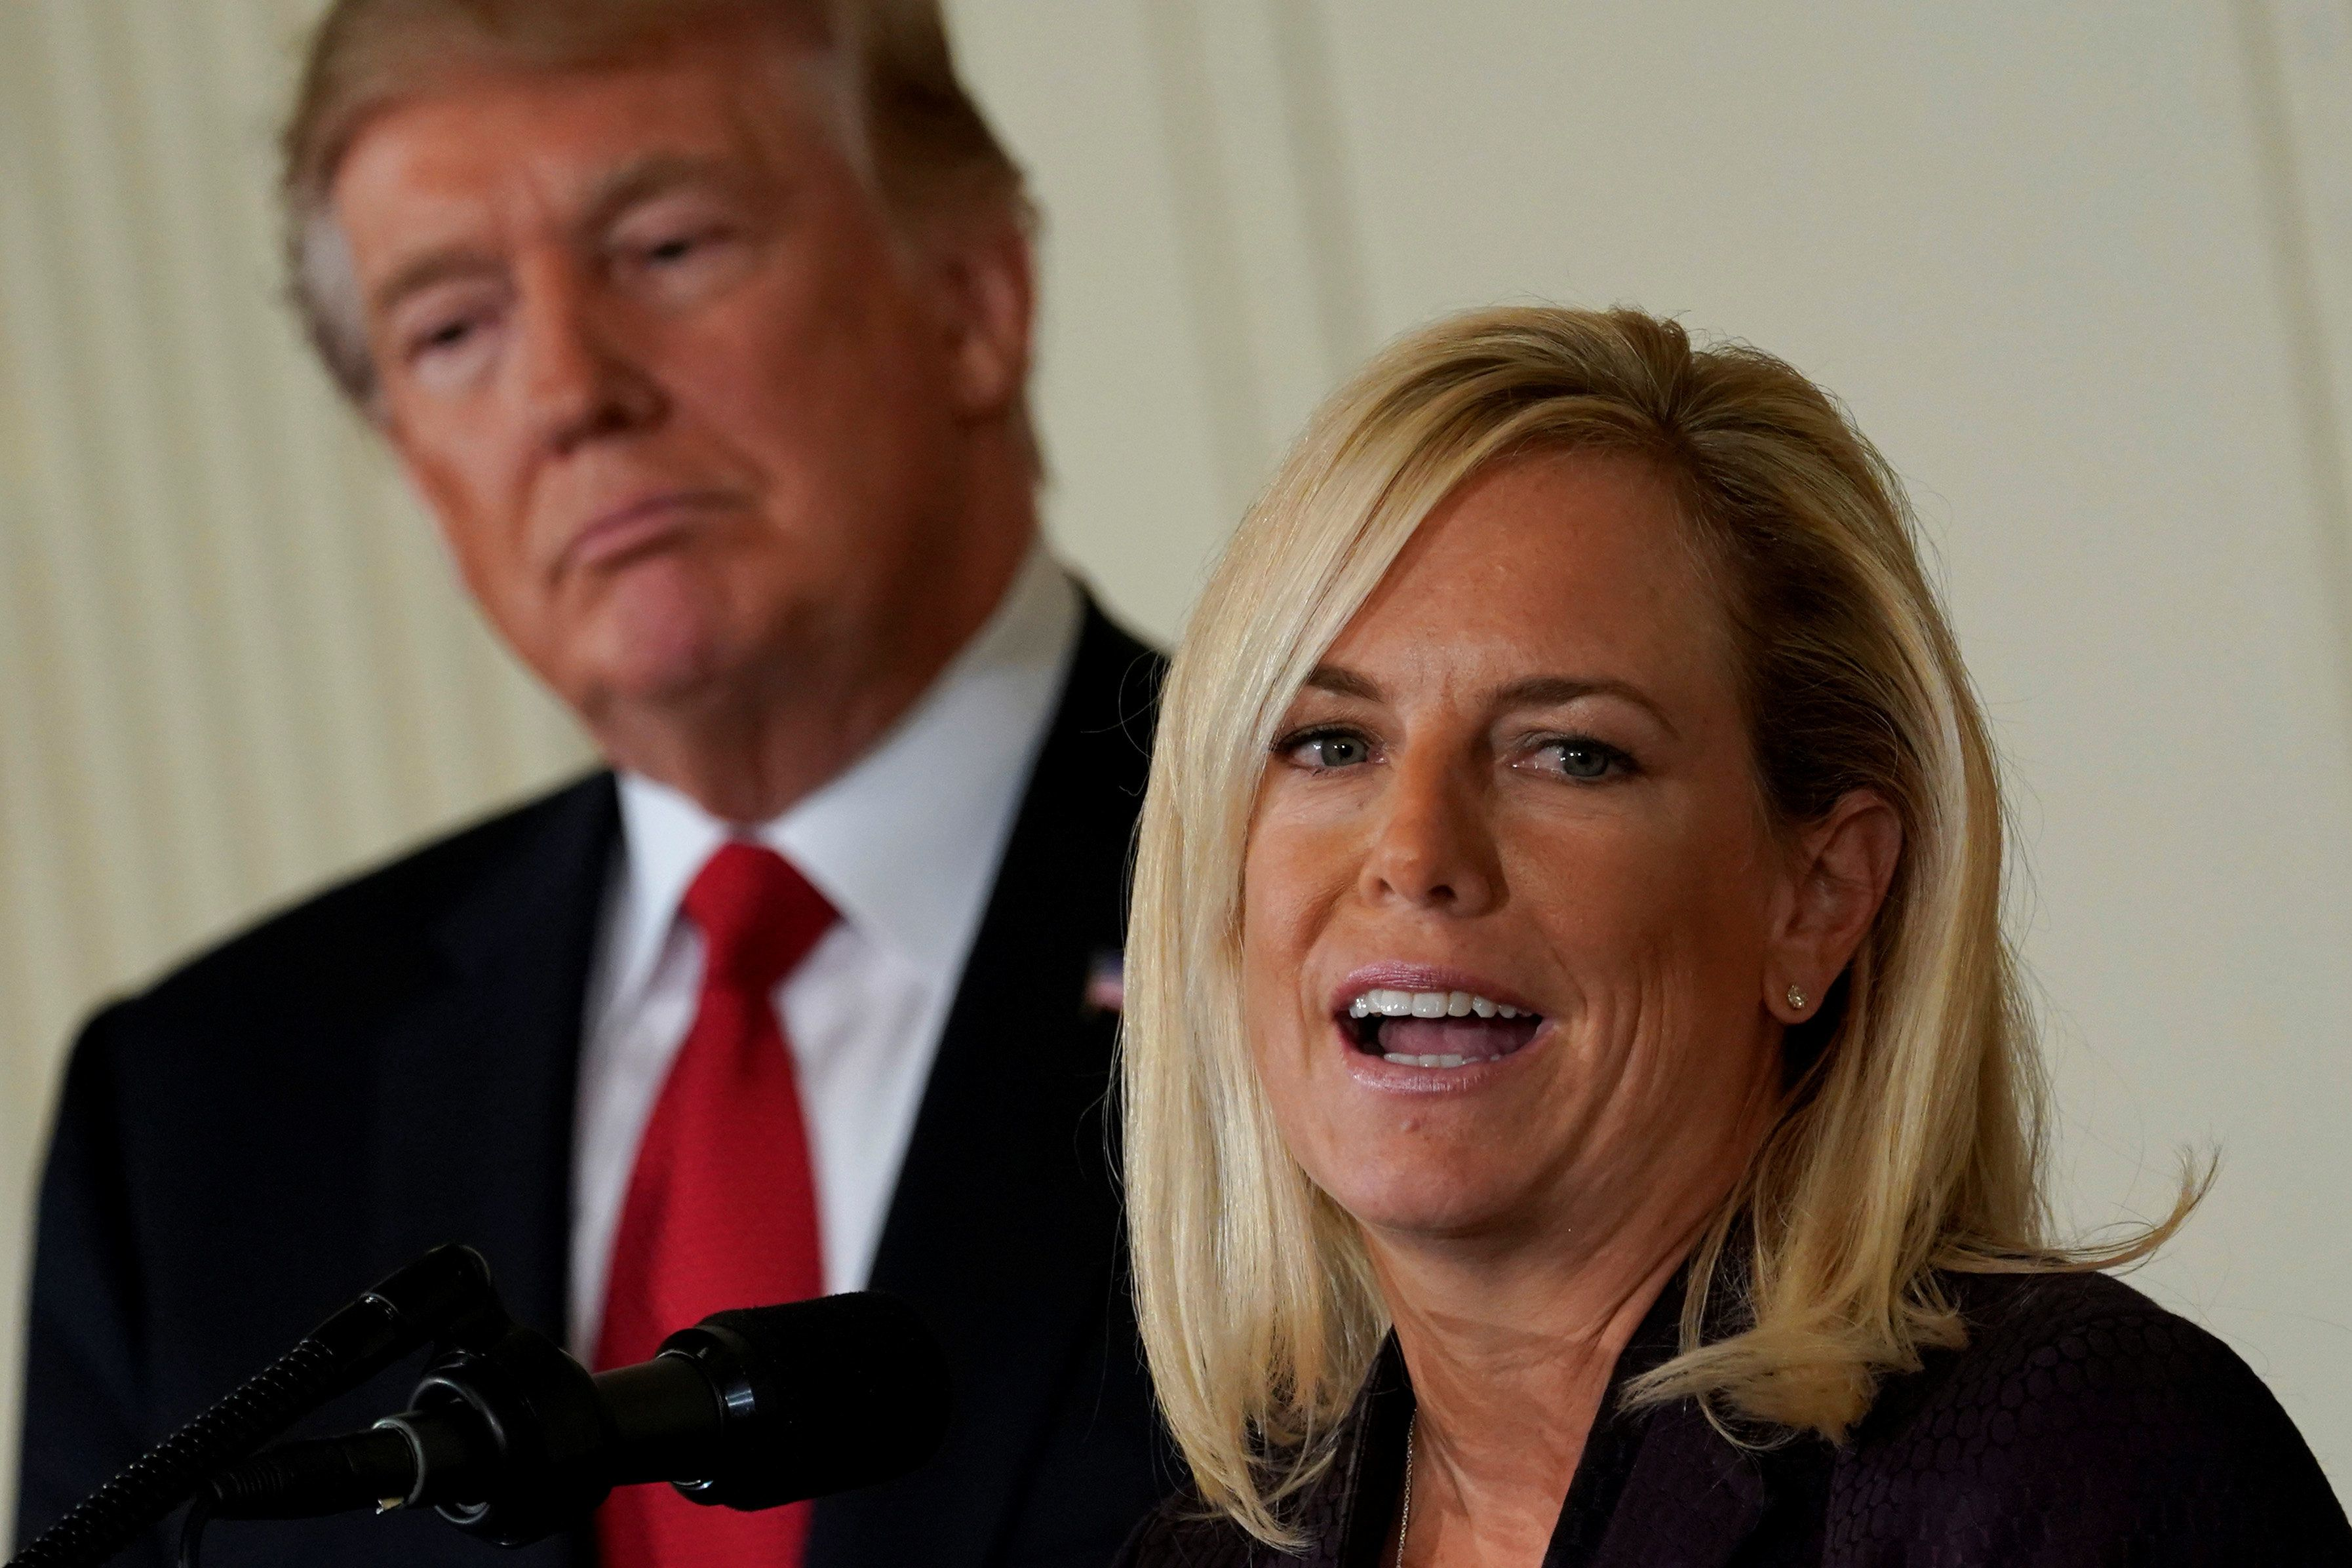 Homeland Security chief: did not hear Trump use vulgarity during meeting